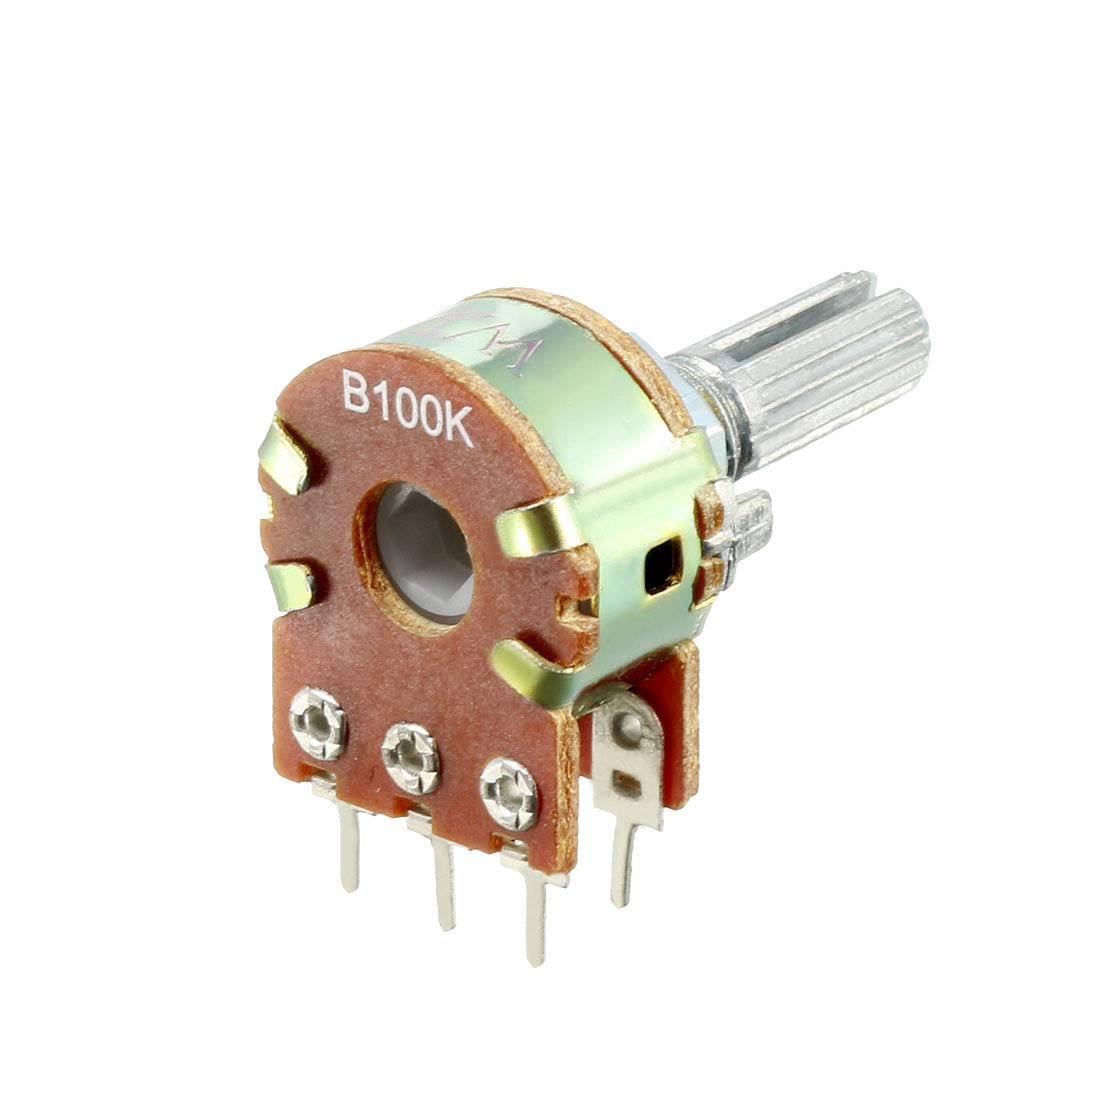 Pack of 5 AEC-Q101 256V TVS DIODE TPSMB300A-A DO214AA TPSMB300A-A 600W